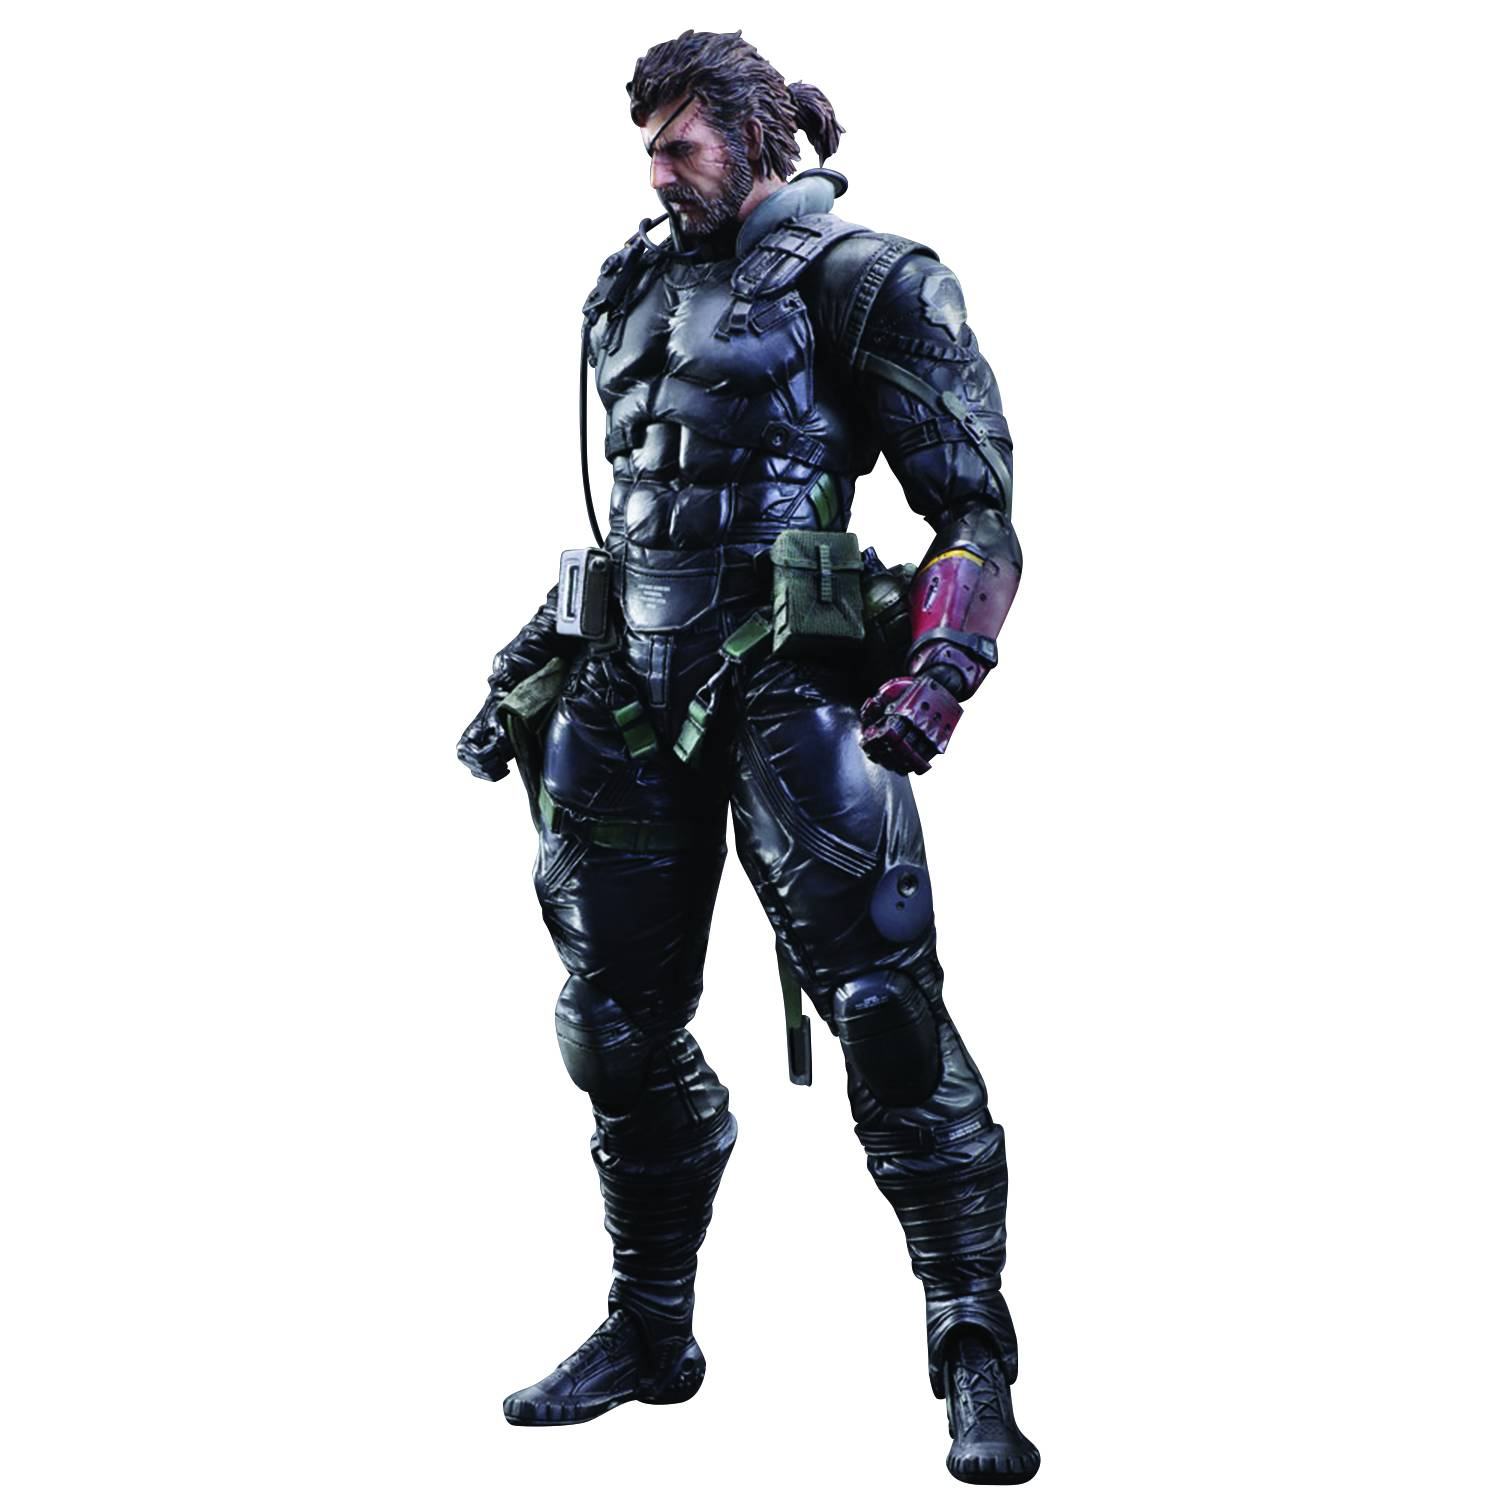 Square Enix Mgs V The Phantom Pain Snake Venom In